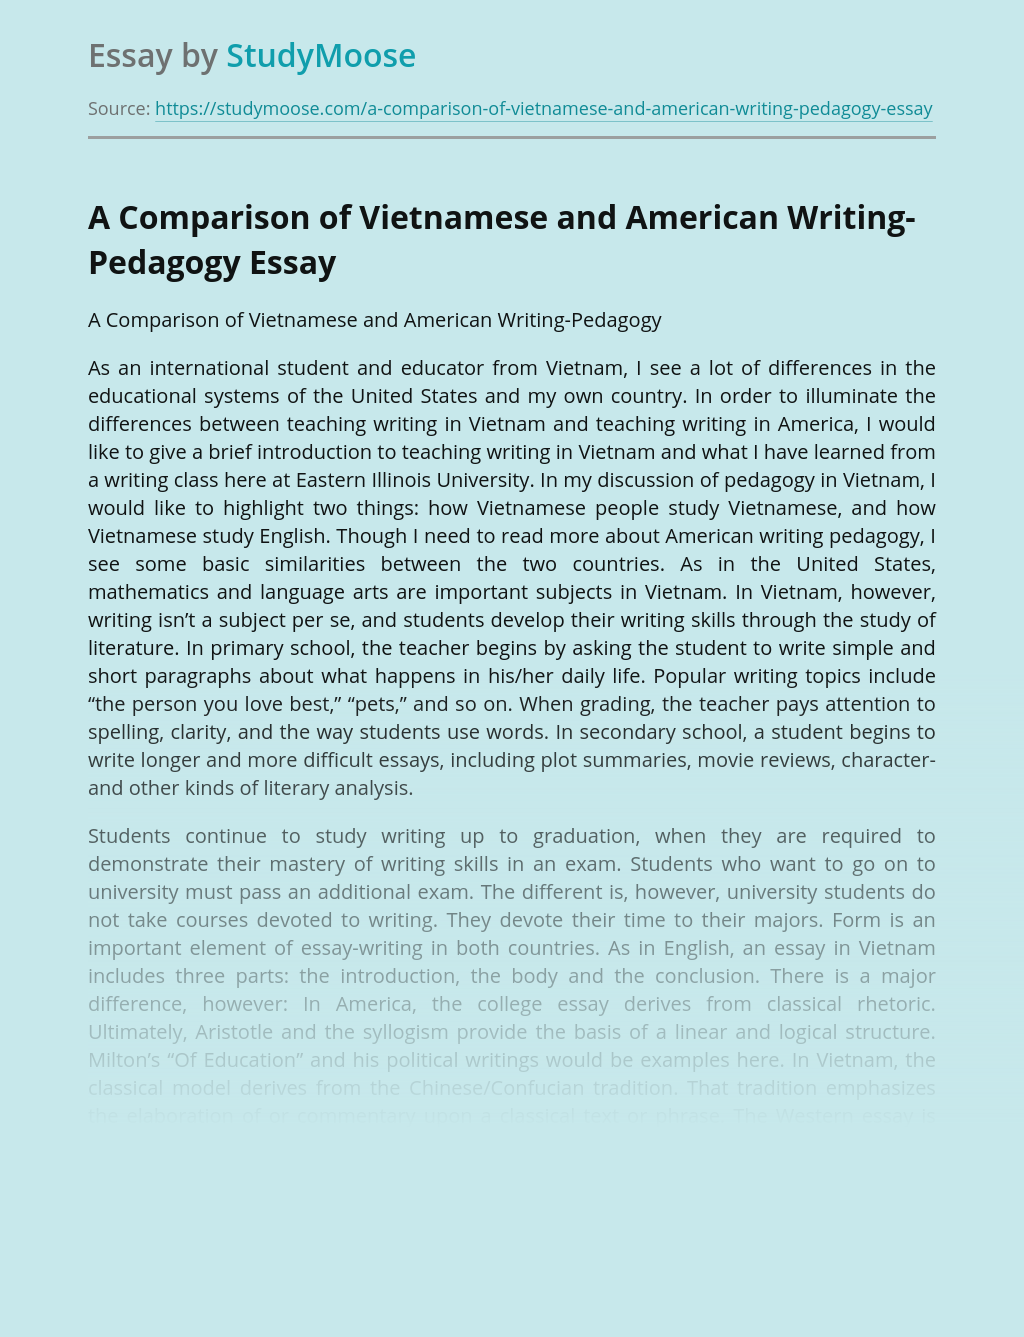 A Comparison of Vietnamese and American Writing-Pedagogy